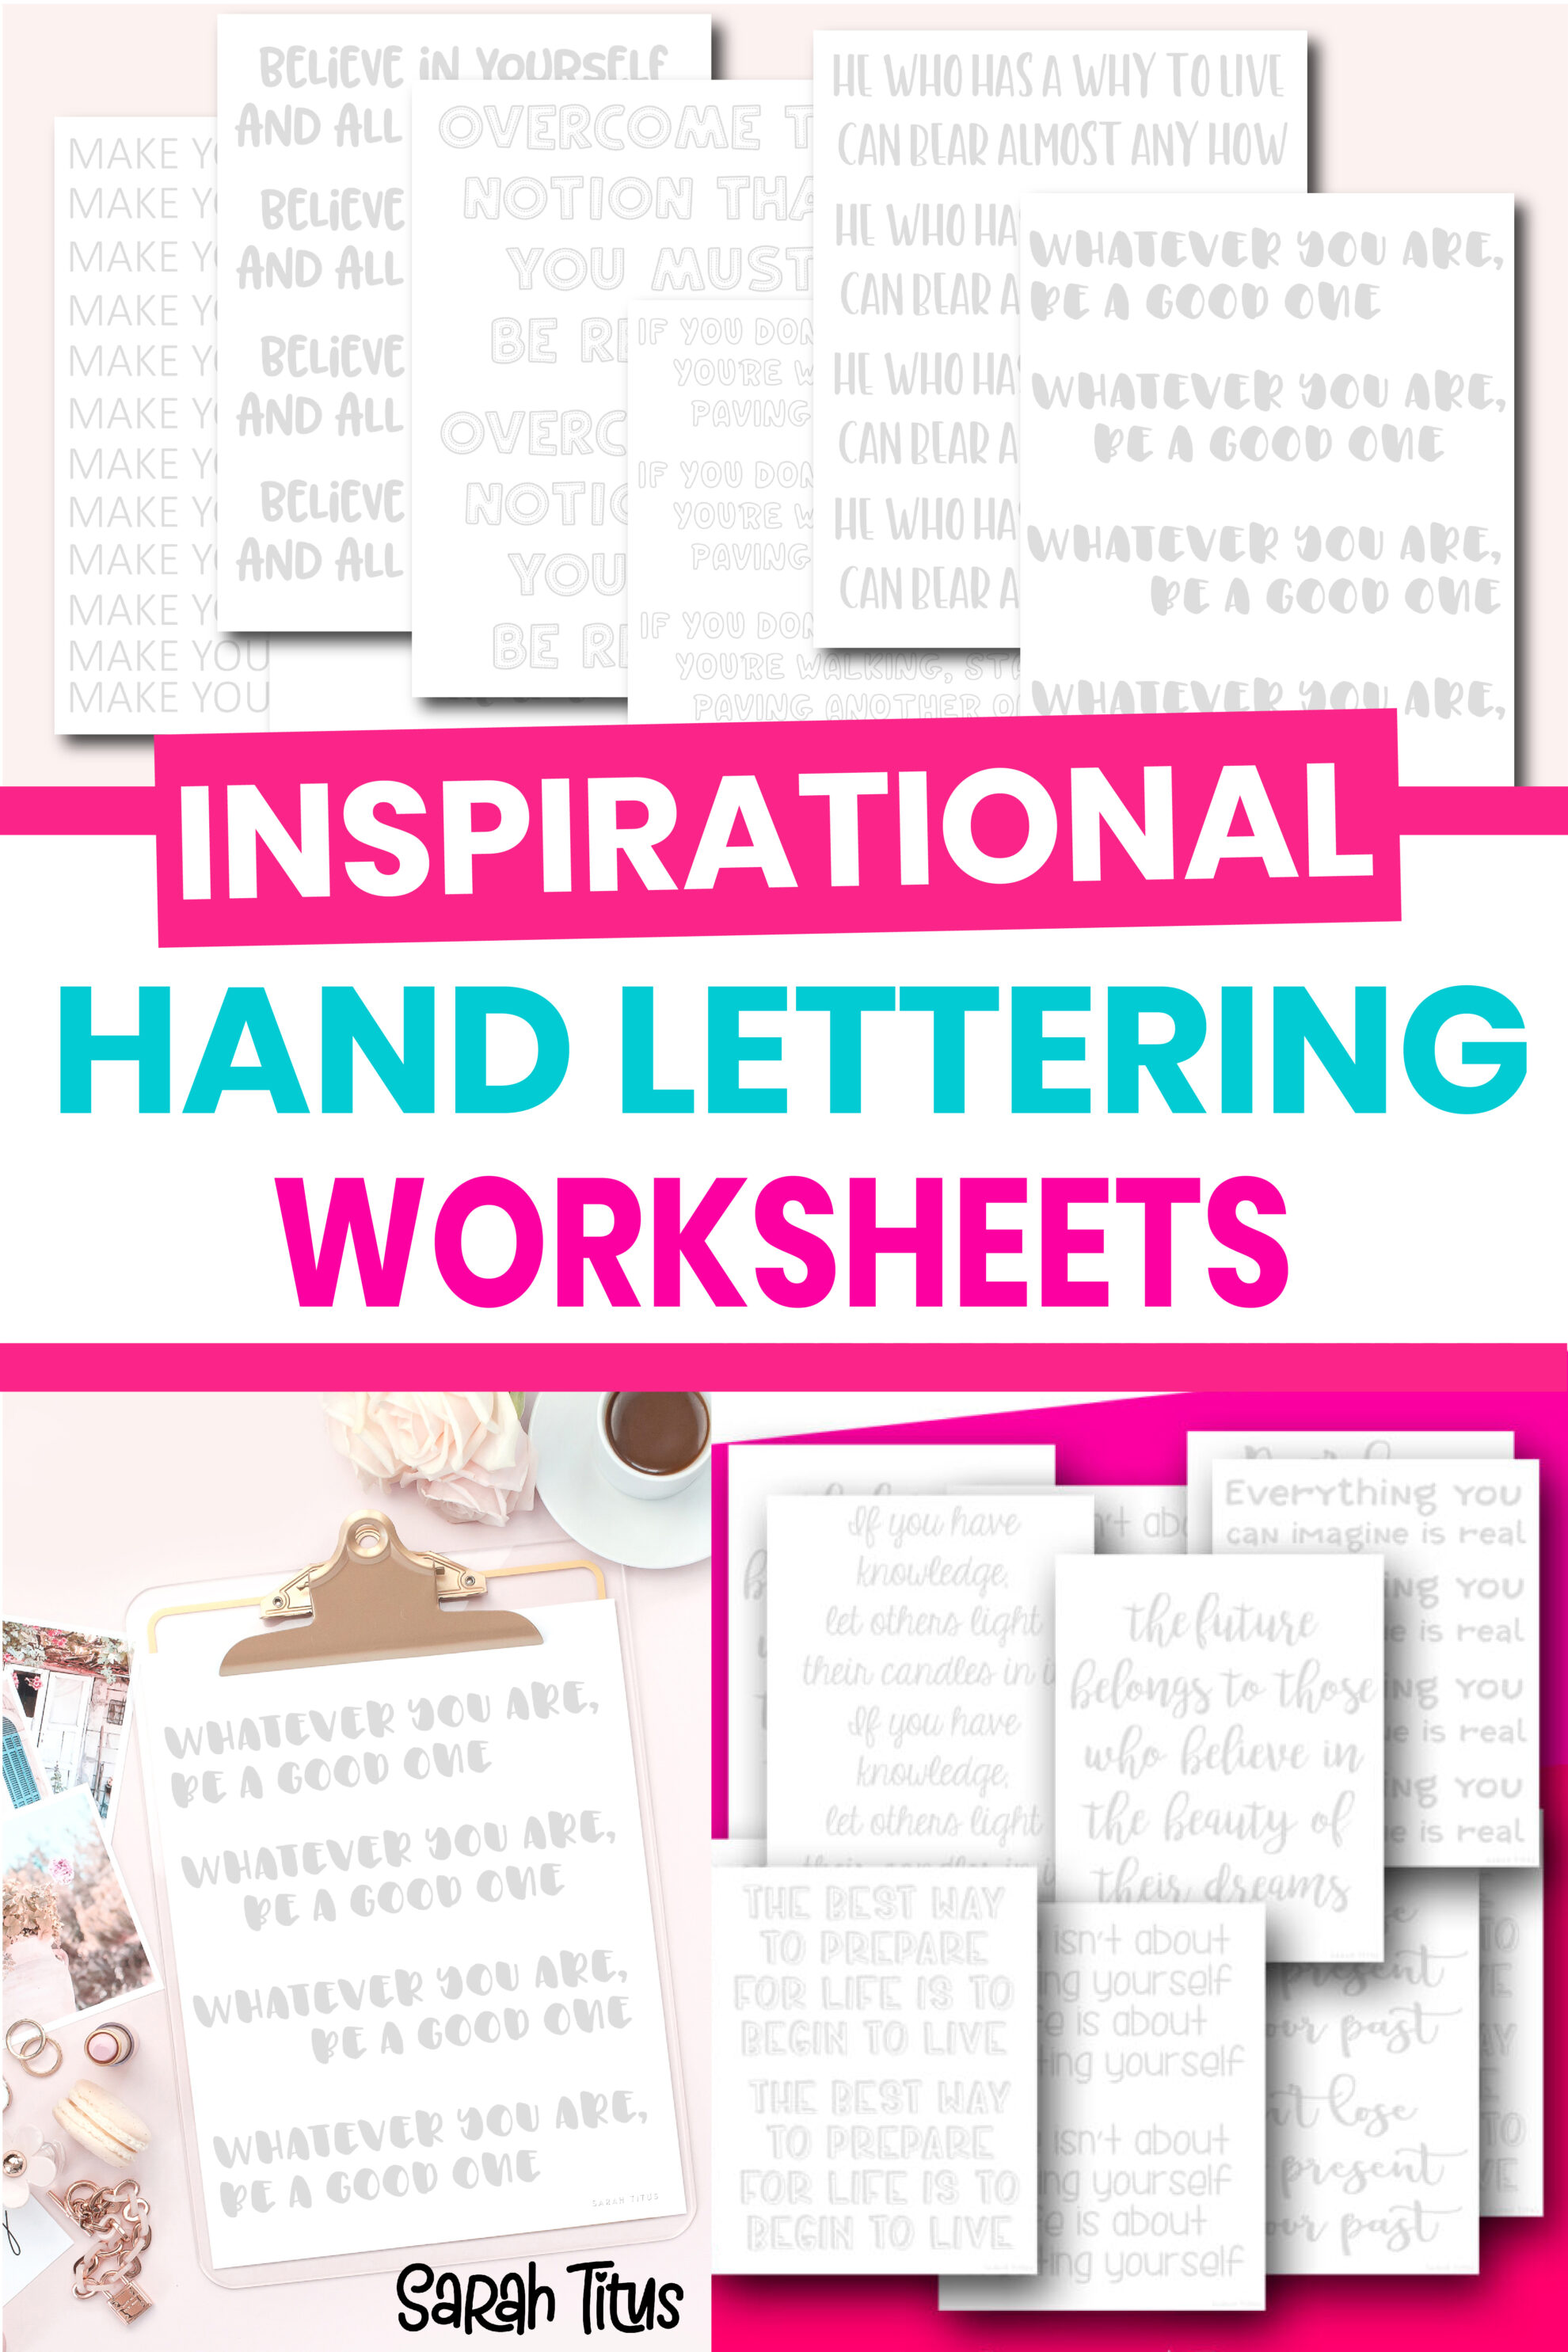 These 30+ free printable hand lettering worksheets are perfect for beginners looking to practice their handwriting and calligraphy! My daughter and I do them together and it's SOOO much fun (not to mention encouraging with these inspirational quotes)! :)